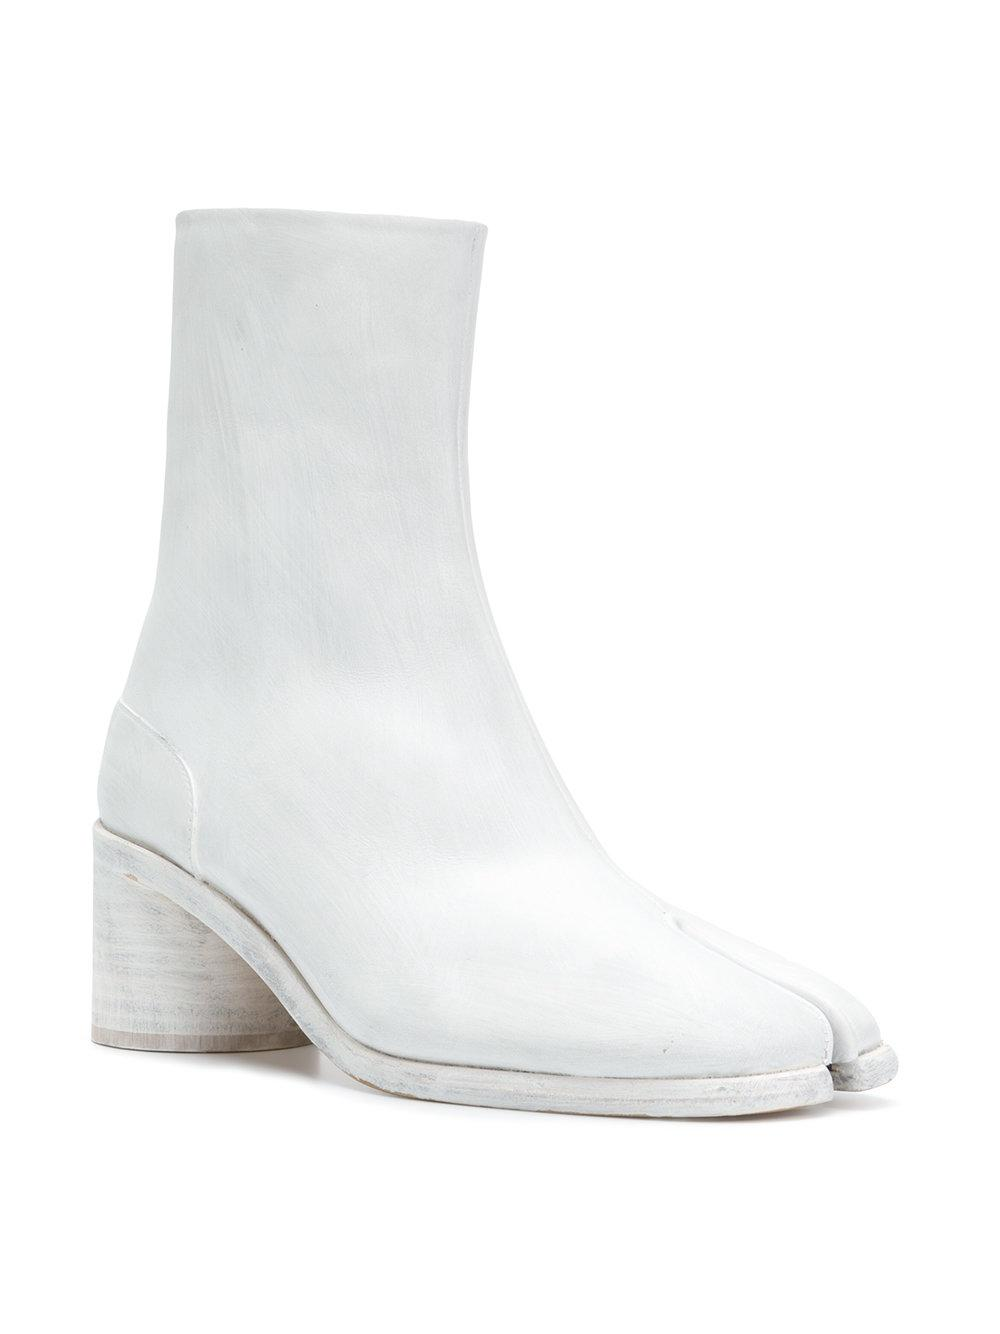 d43cd18b34e2 Lyst - Maison Margiela Tabi Ankle Boots in White for Men - Save 36%